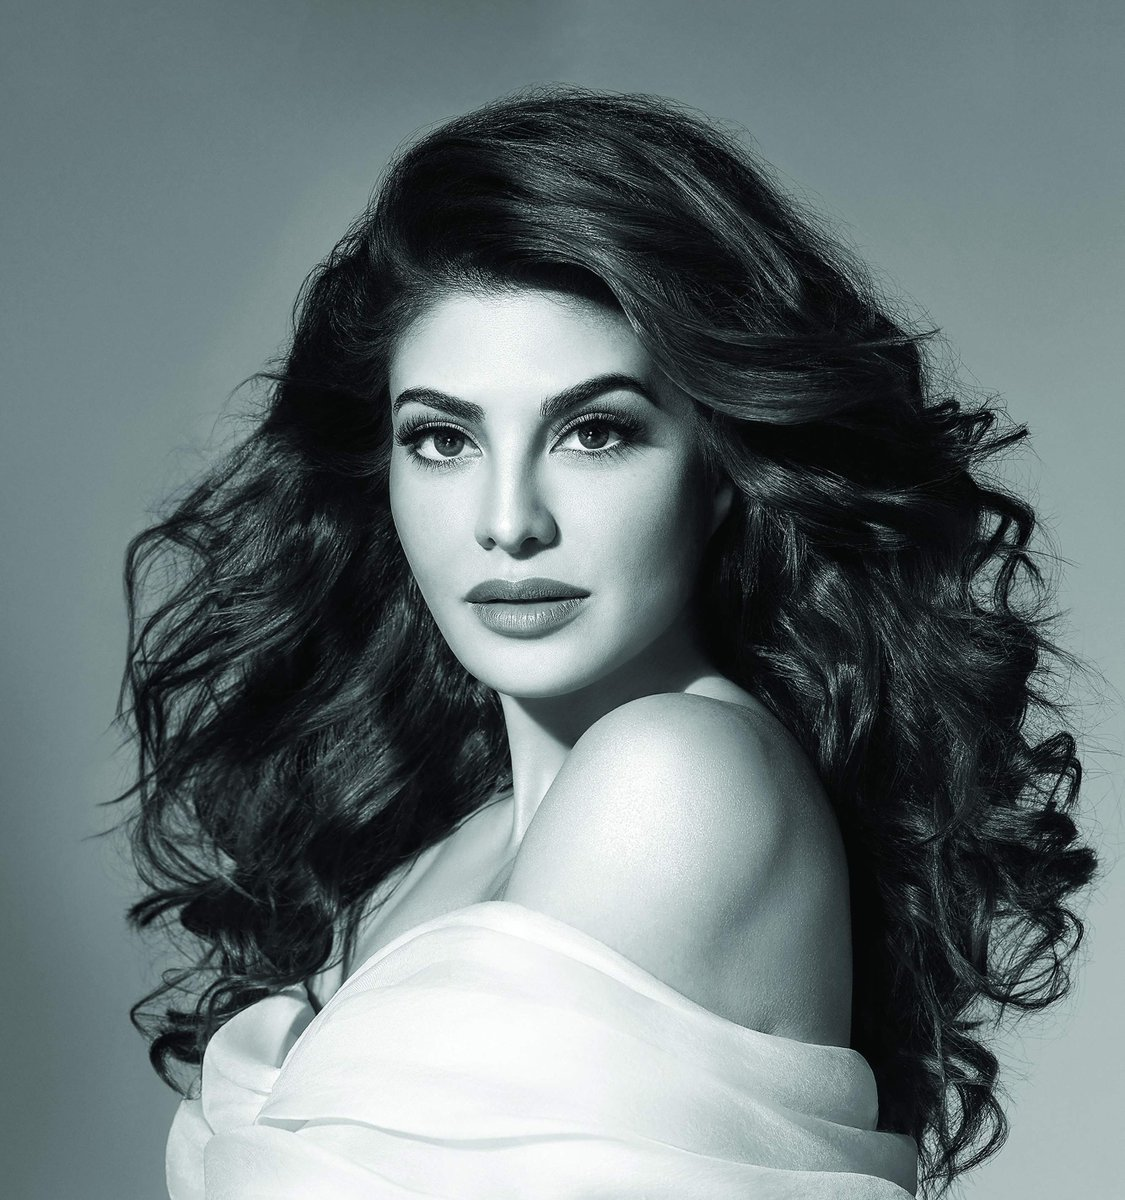 Replying to @Rubinav01234: She is a beauty queen  WE SUPPORT JACQUELINE